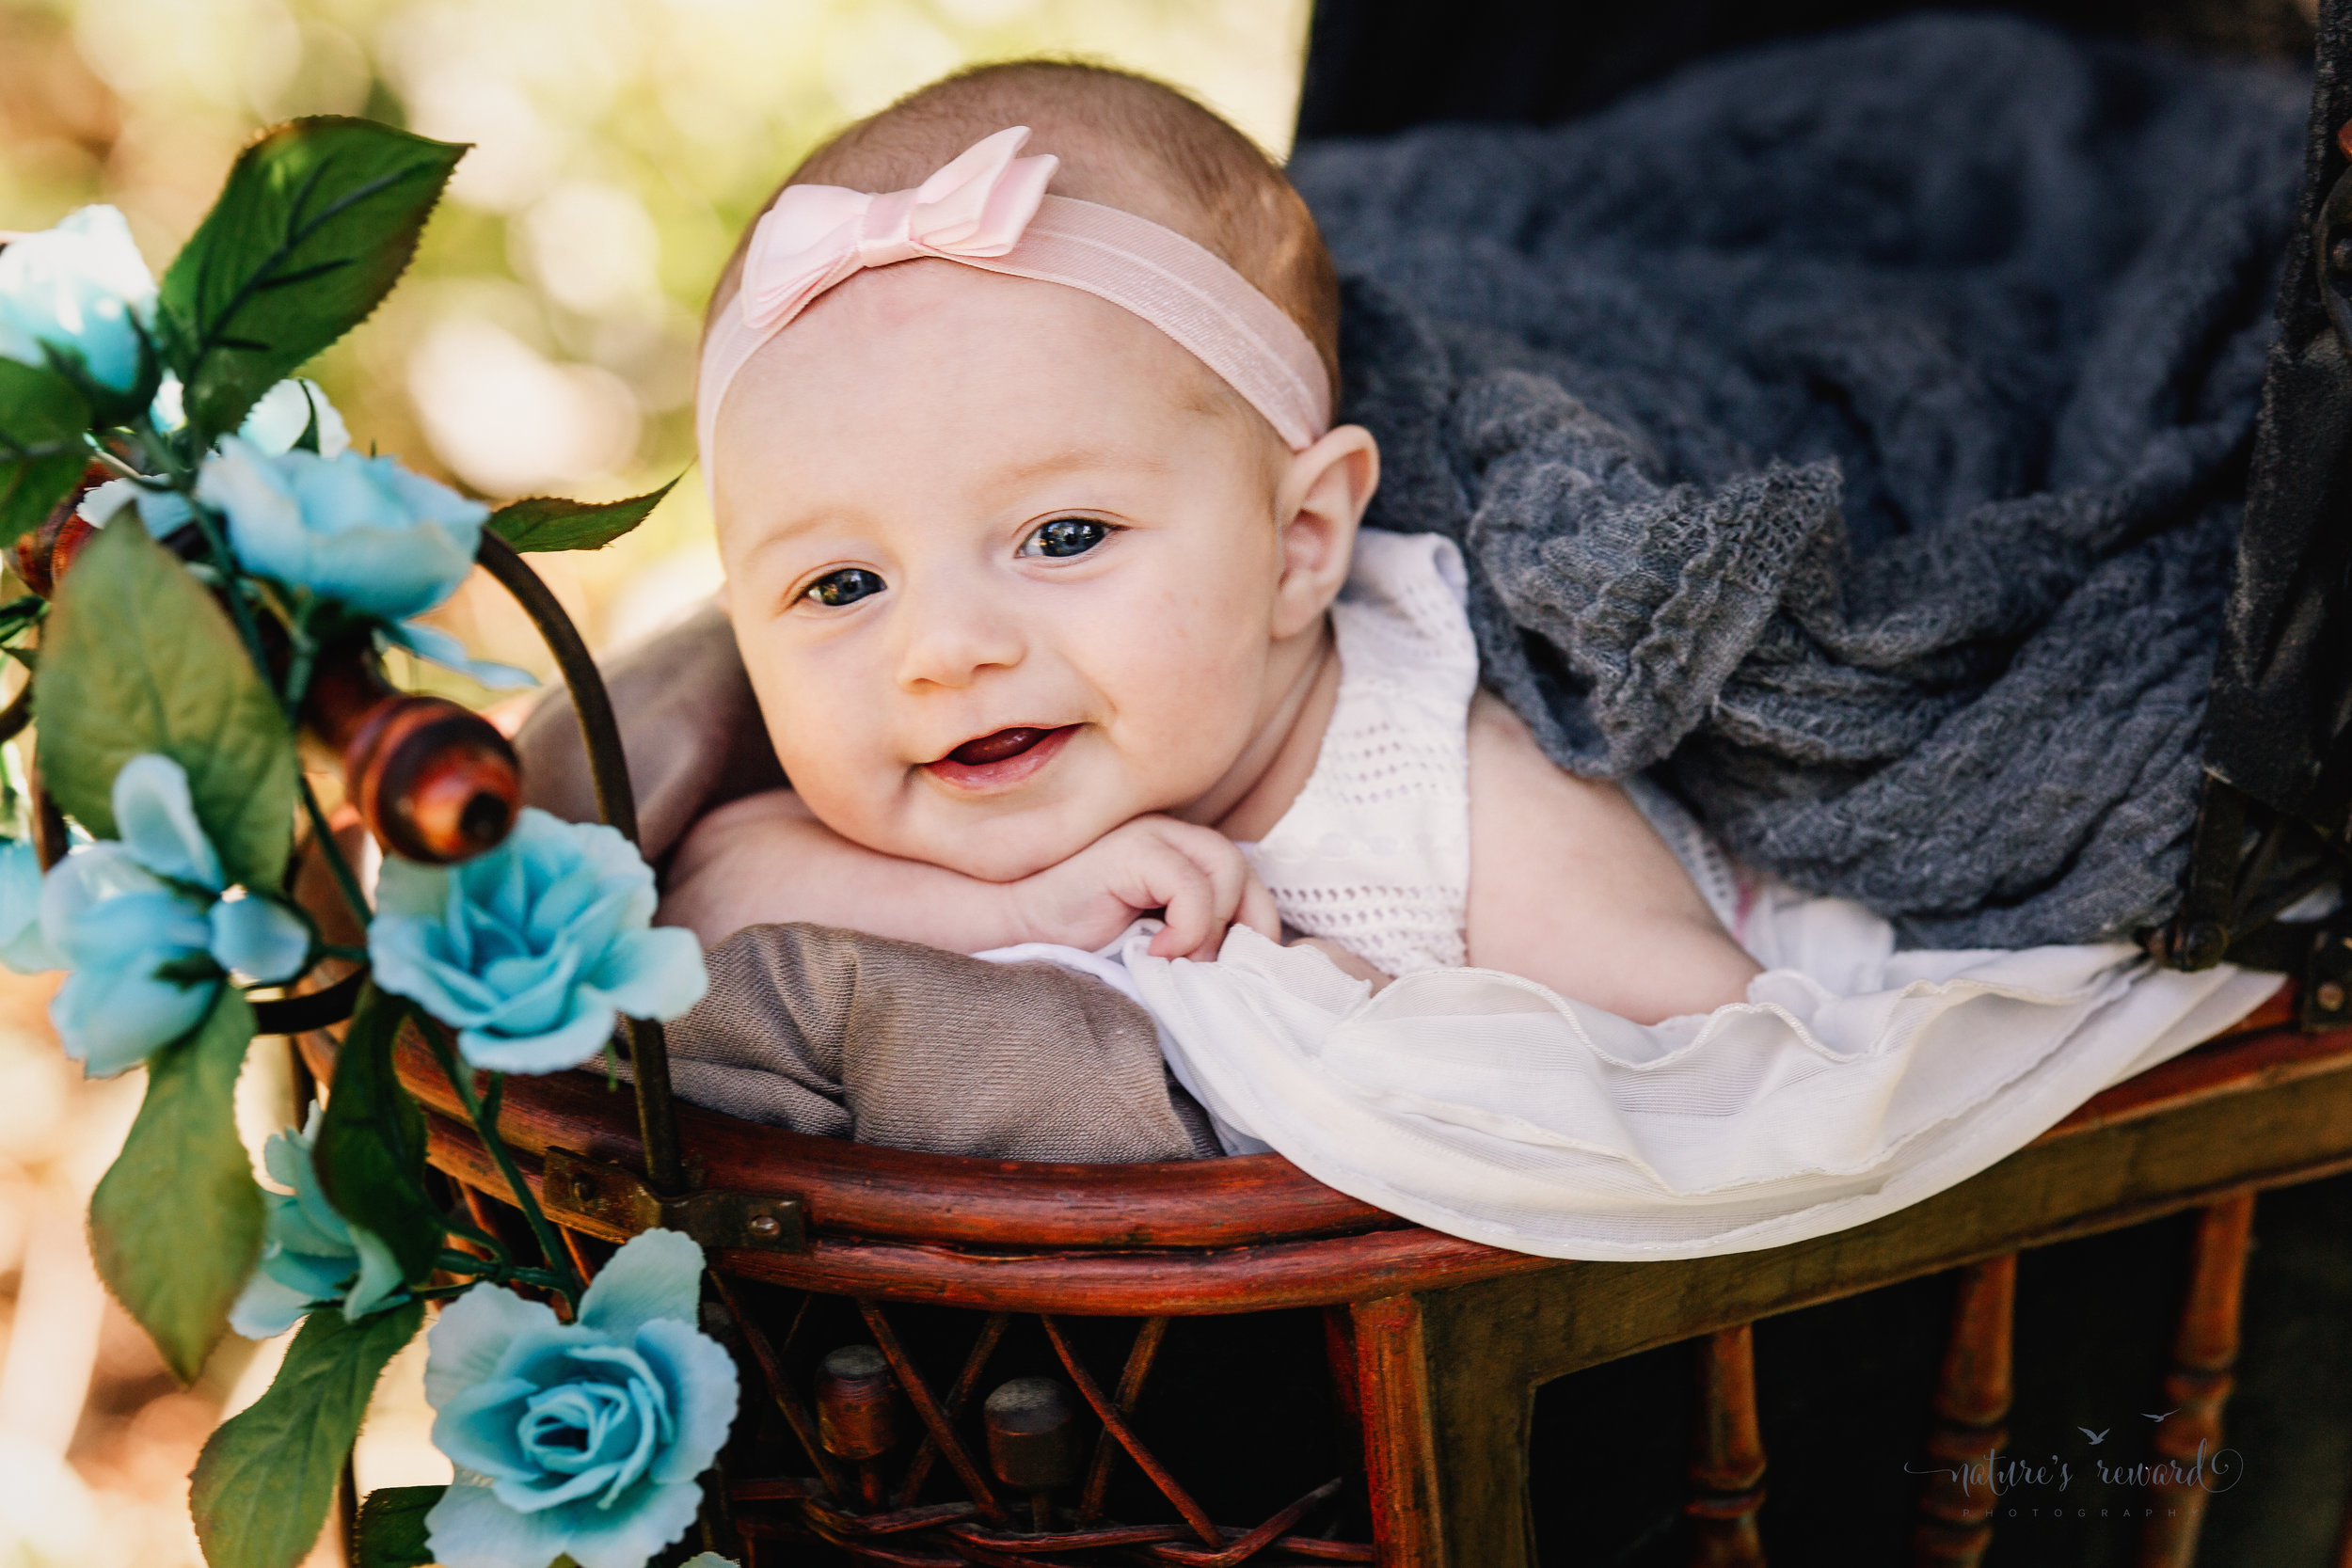 Three (3) month old smiling baby girl in a white dress and pink hair band lays dreamingly in an antique doll carriage in the beautiful setting sunlight in park setting in this portrait by Nature's Reward Photography.